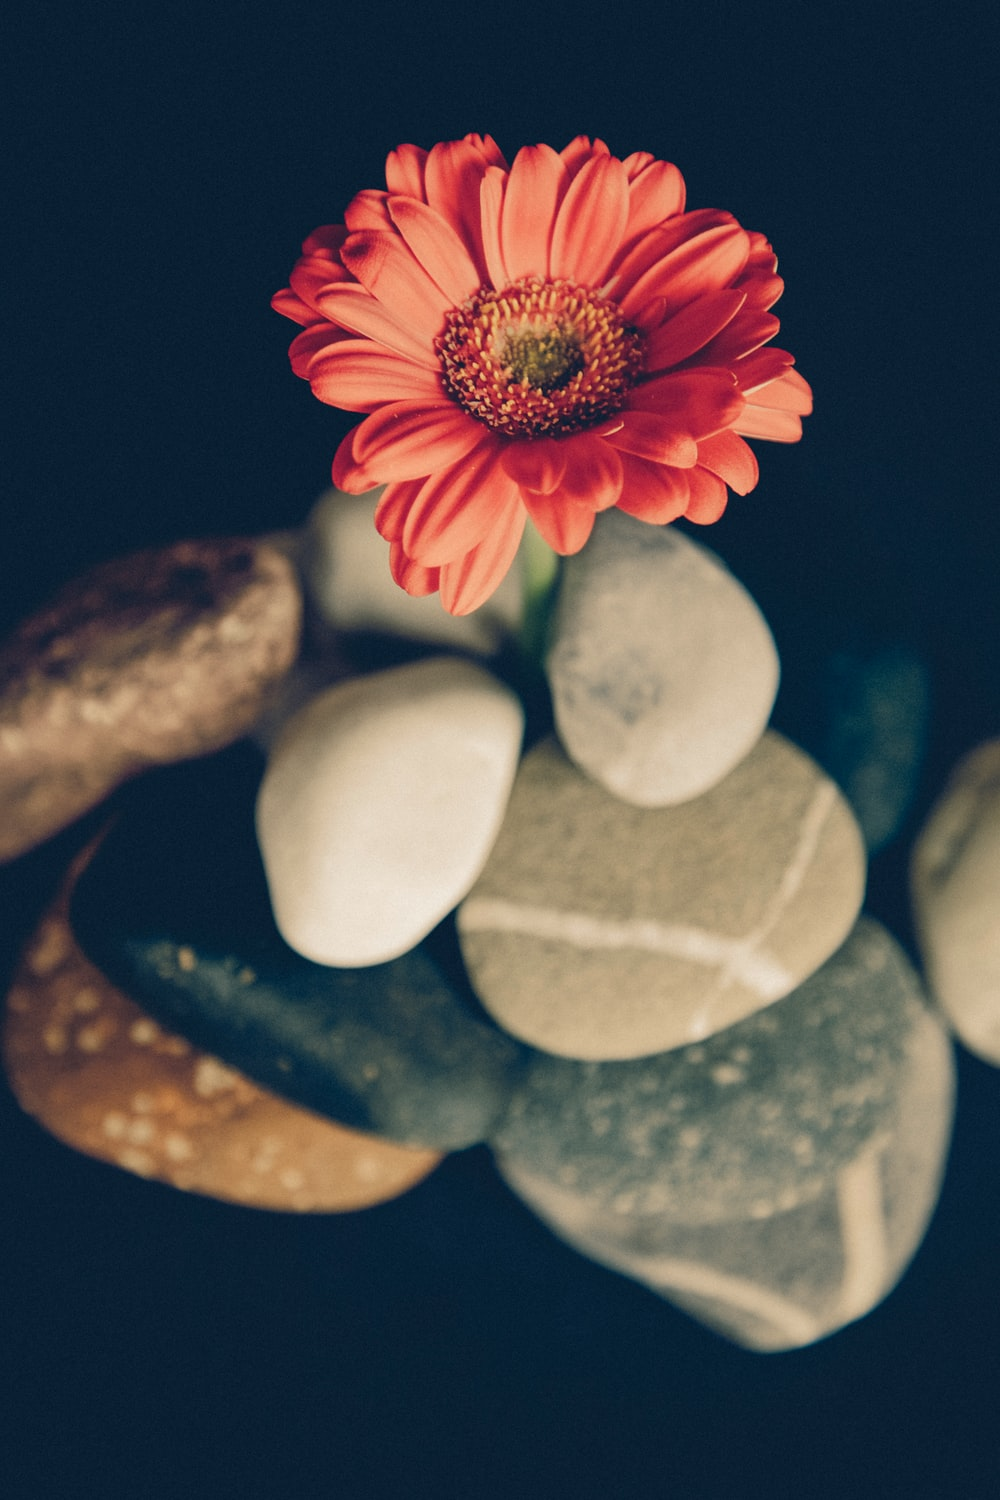 focus photo of red daisy on rock formation